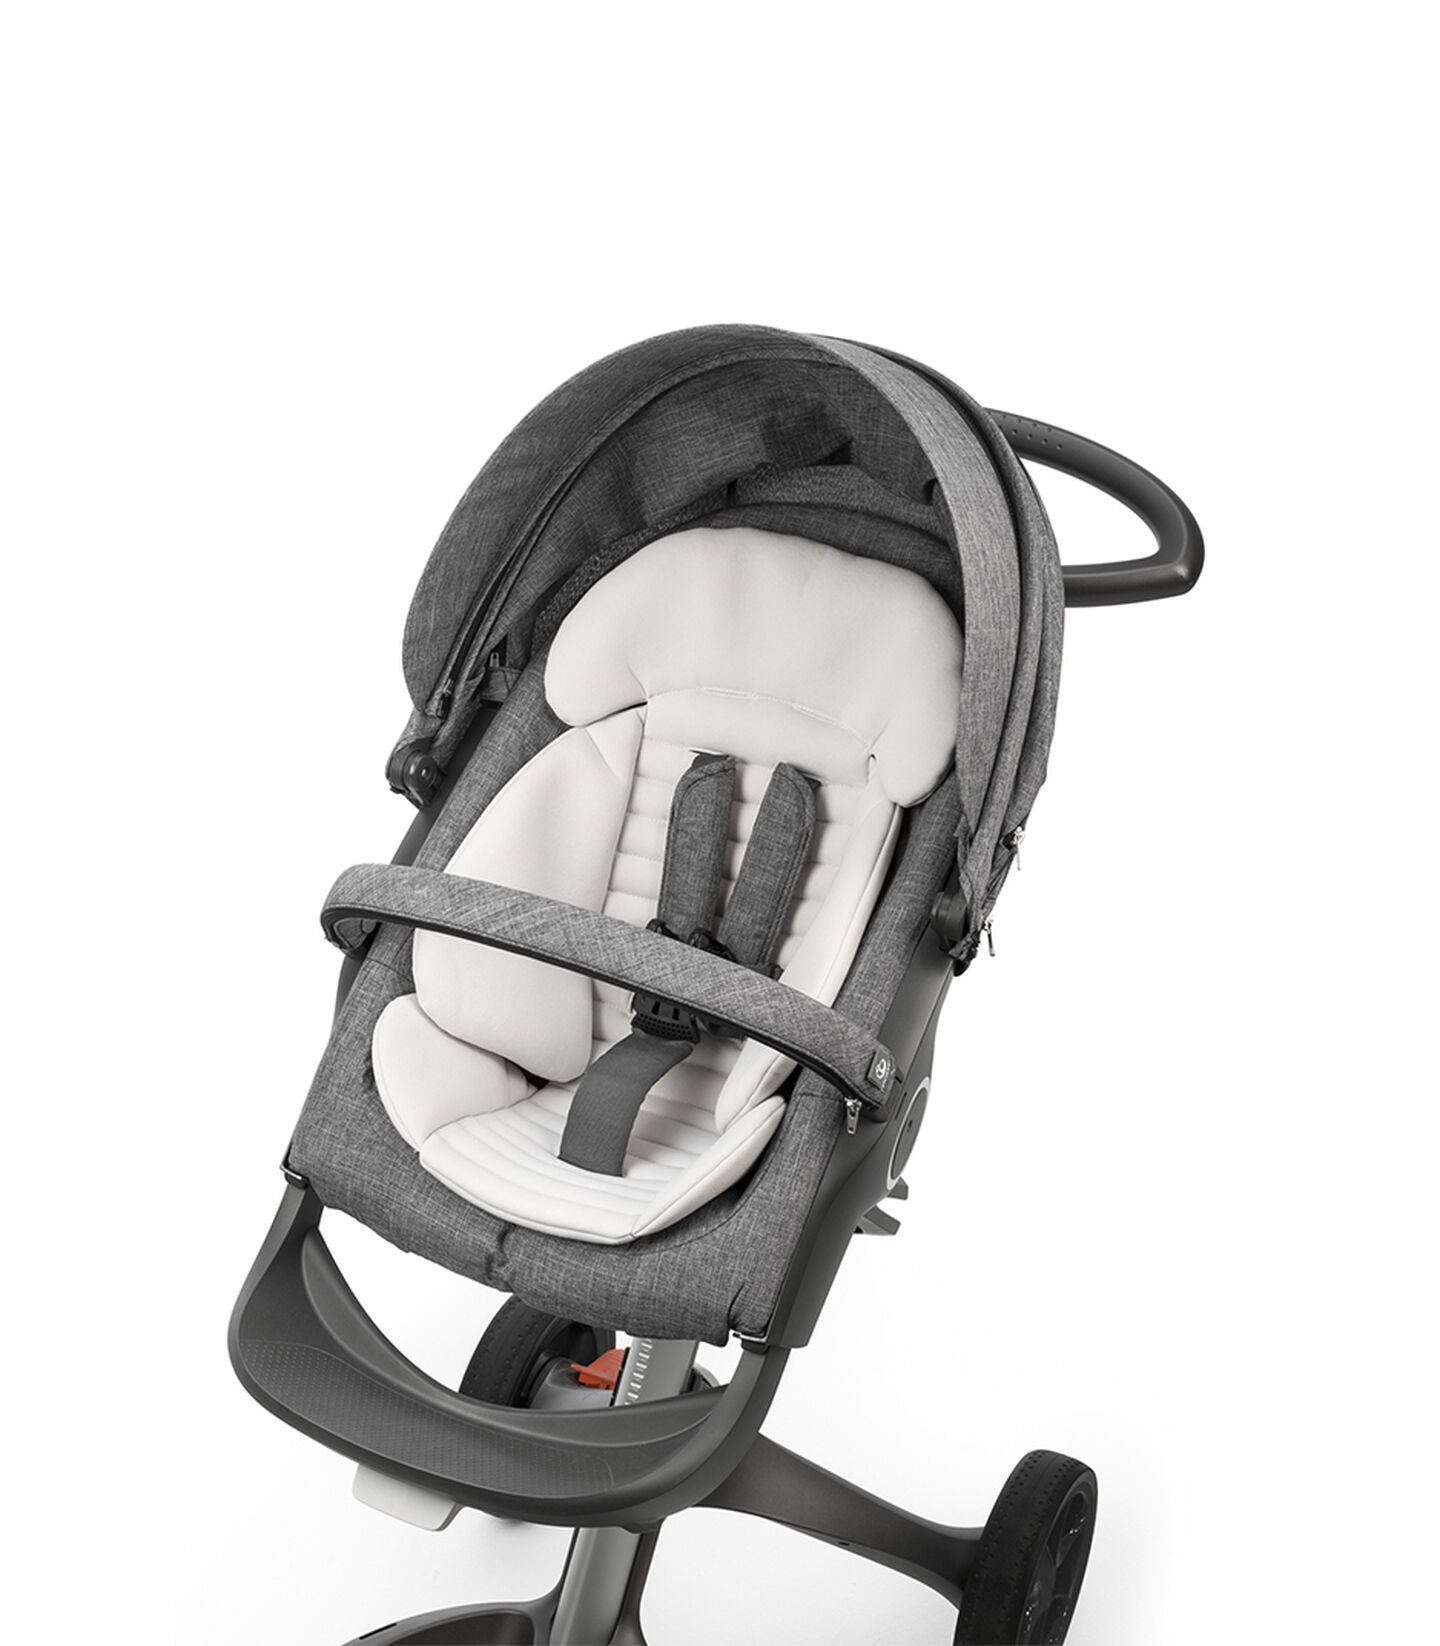 Stokke® Xplory® with Stokke® Stroller Seat Inlay